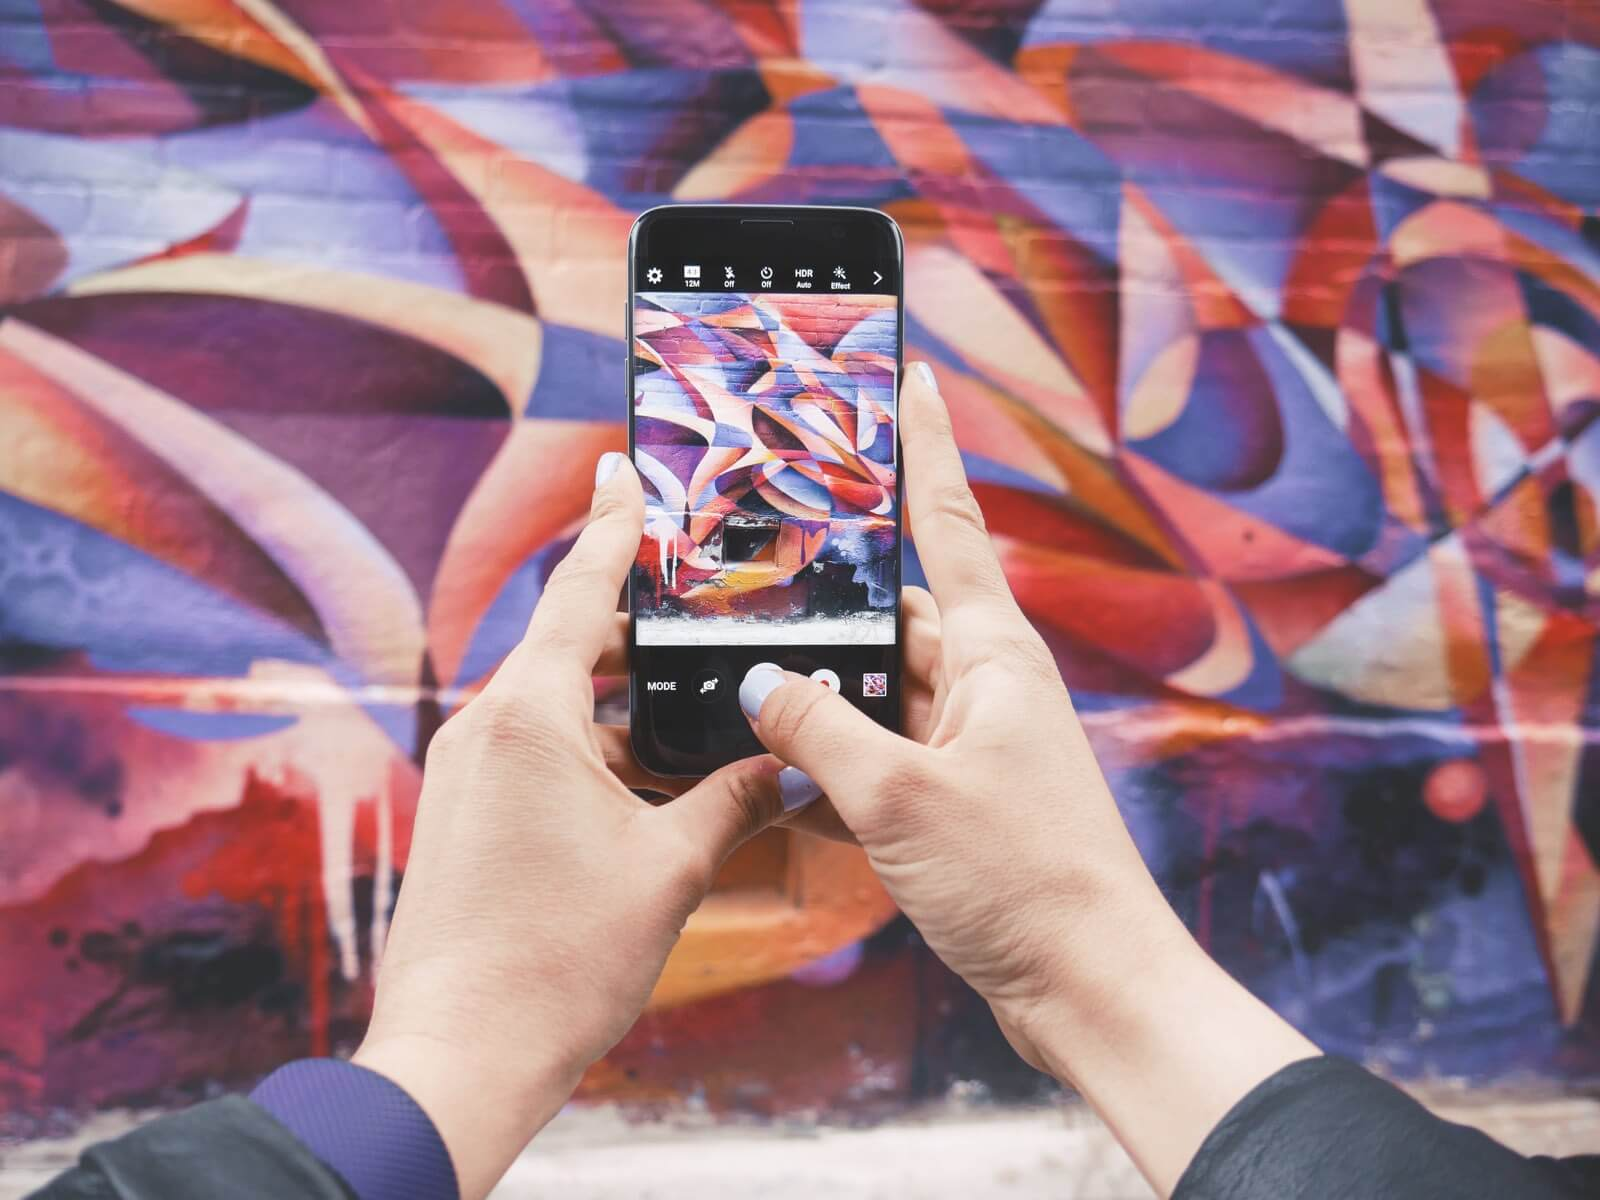 Hands holding a phone taking a picture of graffiti art